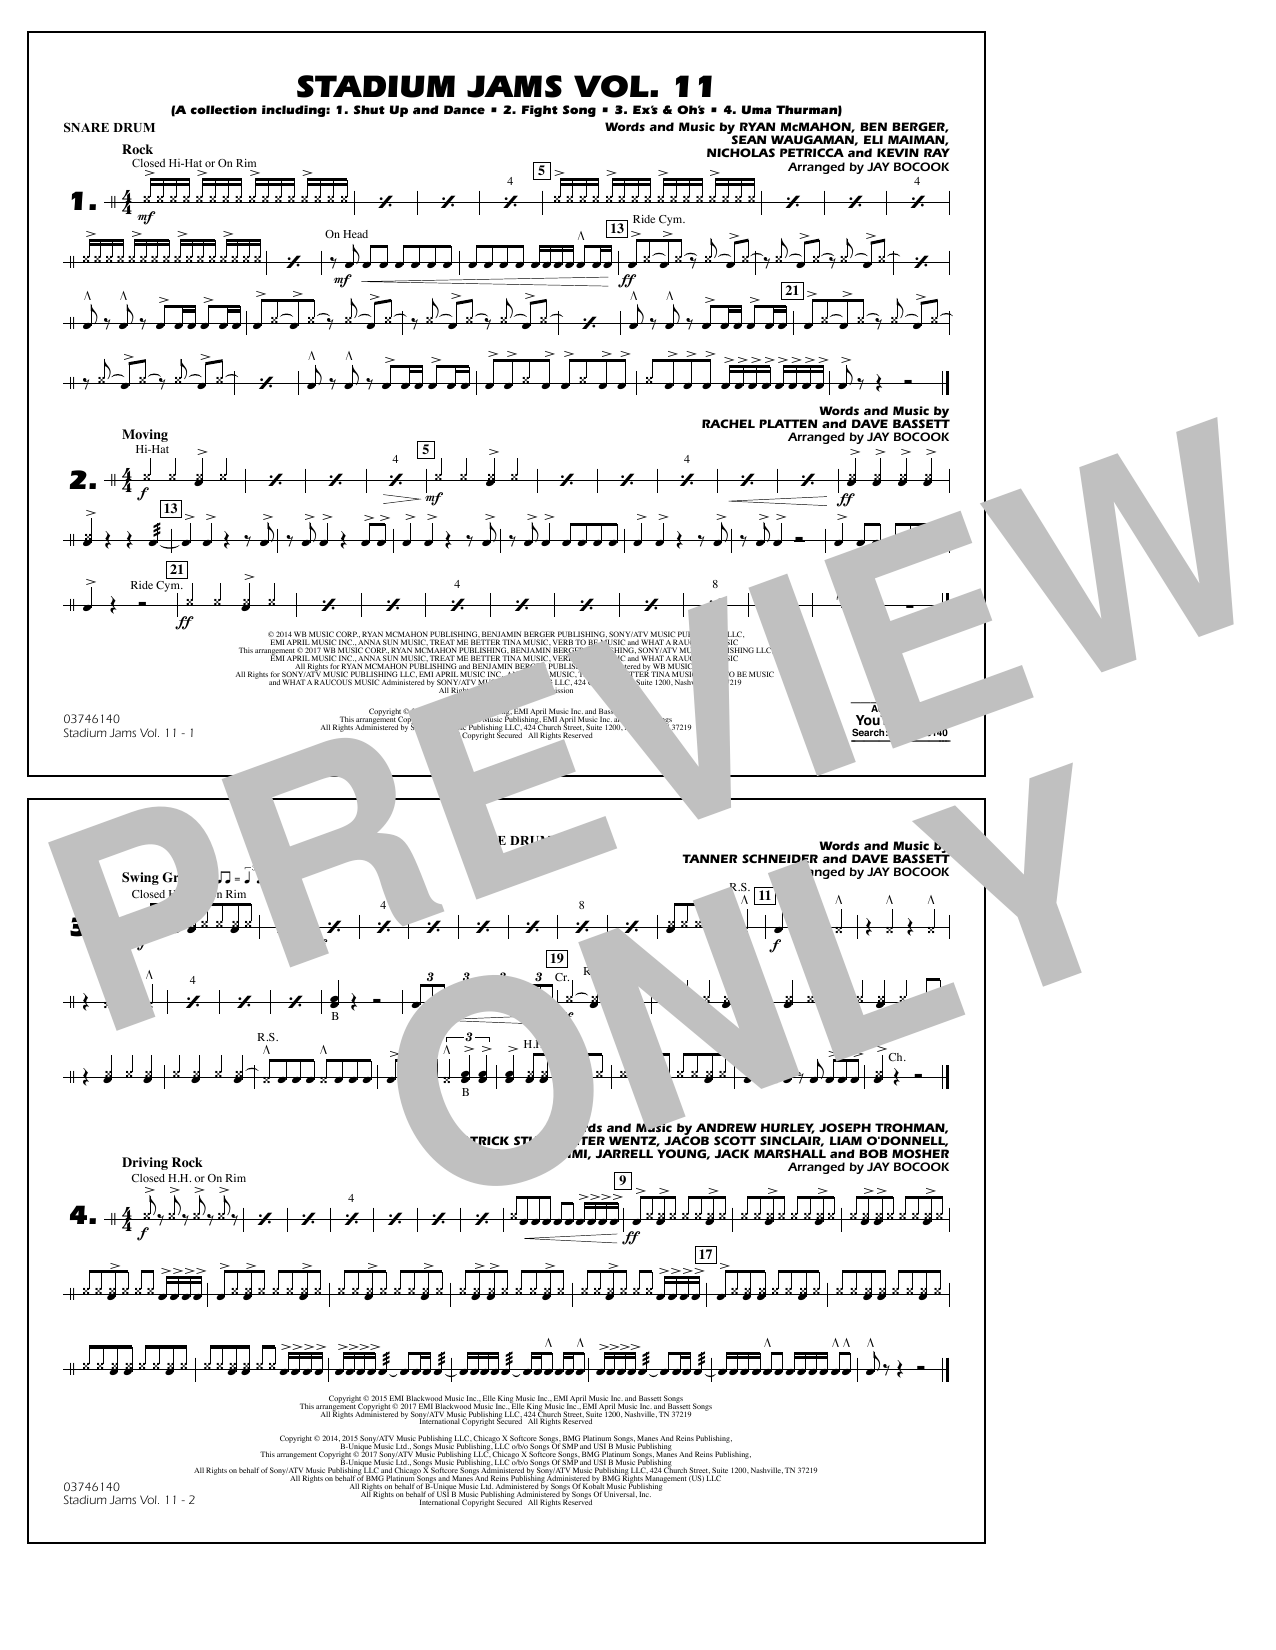 Stadium Jams Volume 11 - Snare Drum Sheet Music